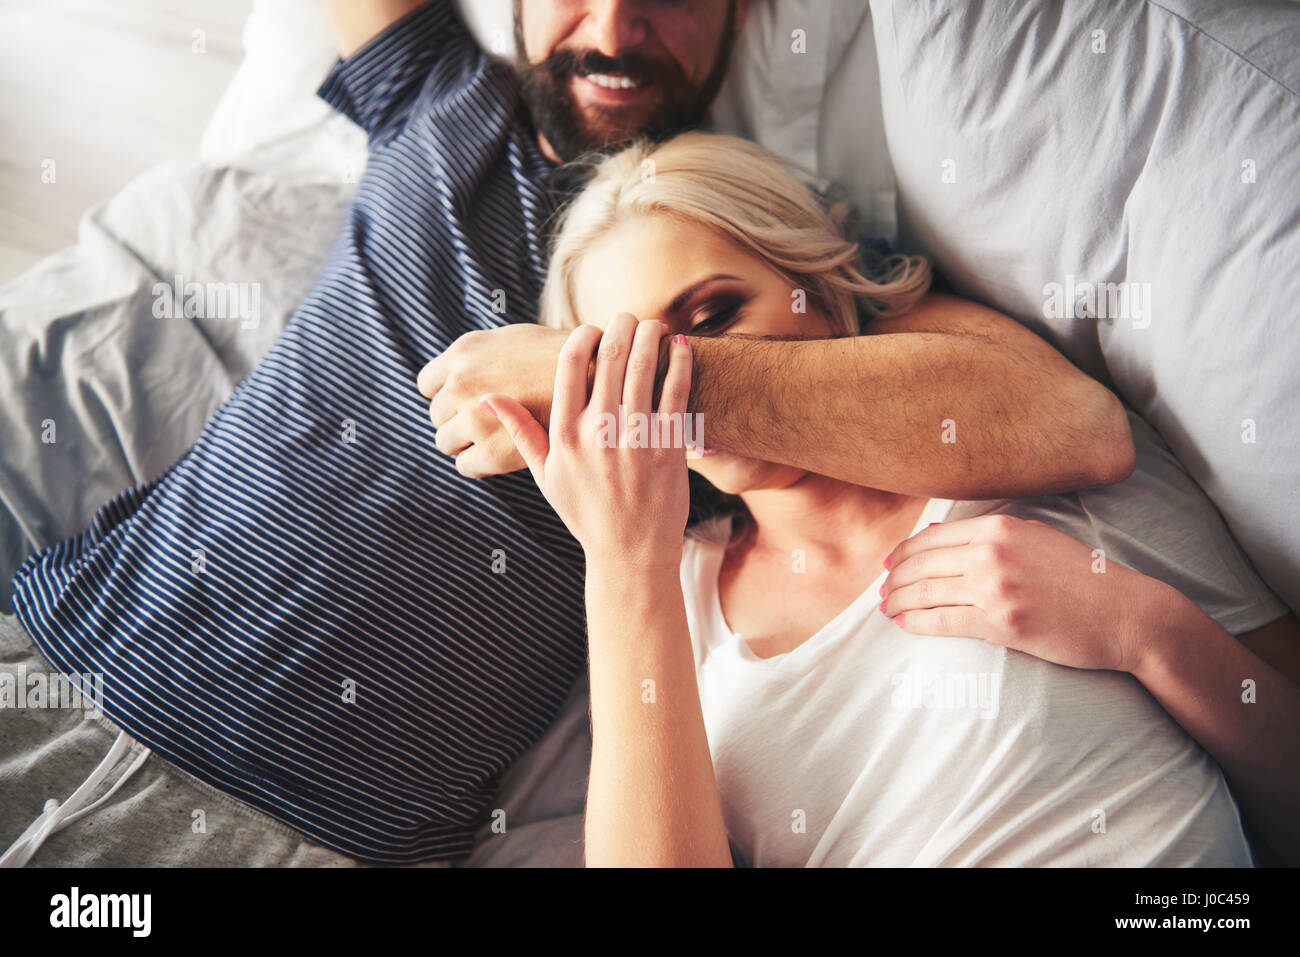 Couple relaxing on bed, dupant autour Photo Stock